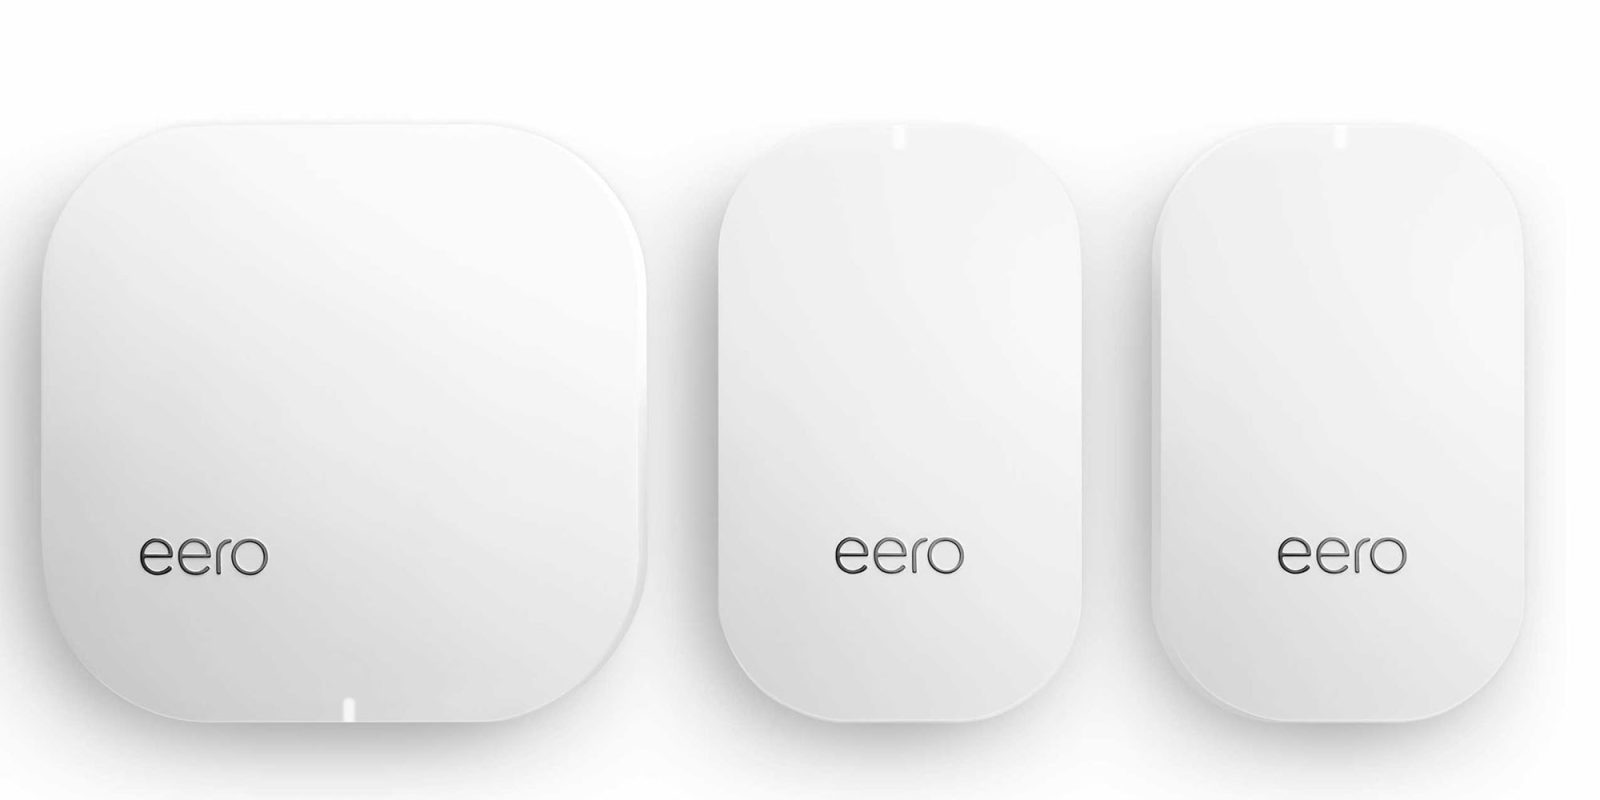 Amazon acquires mesh router company eero to further expand